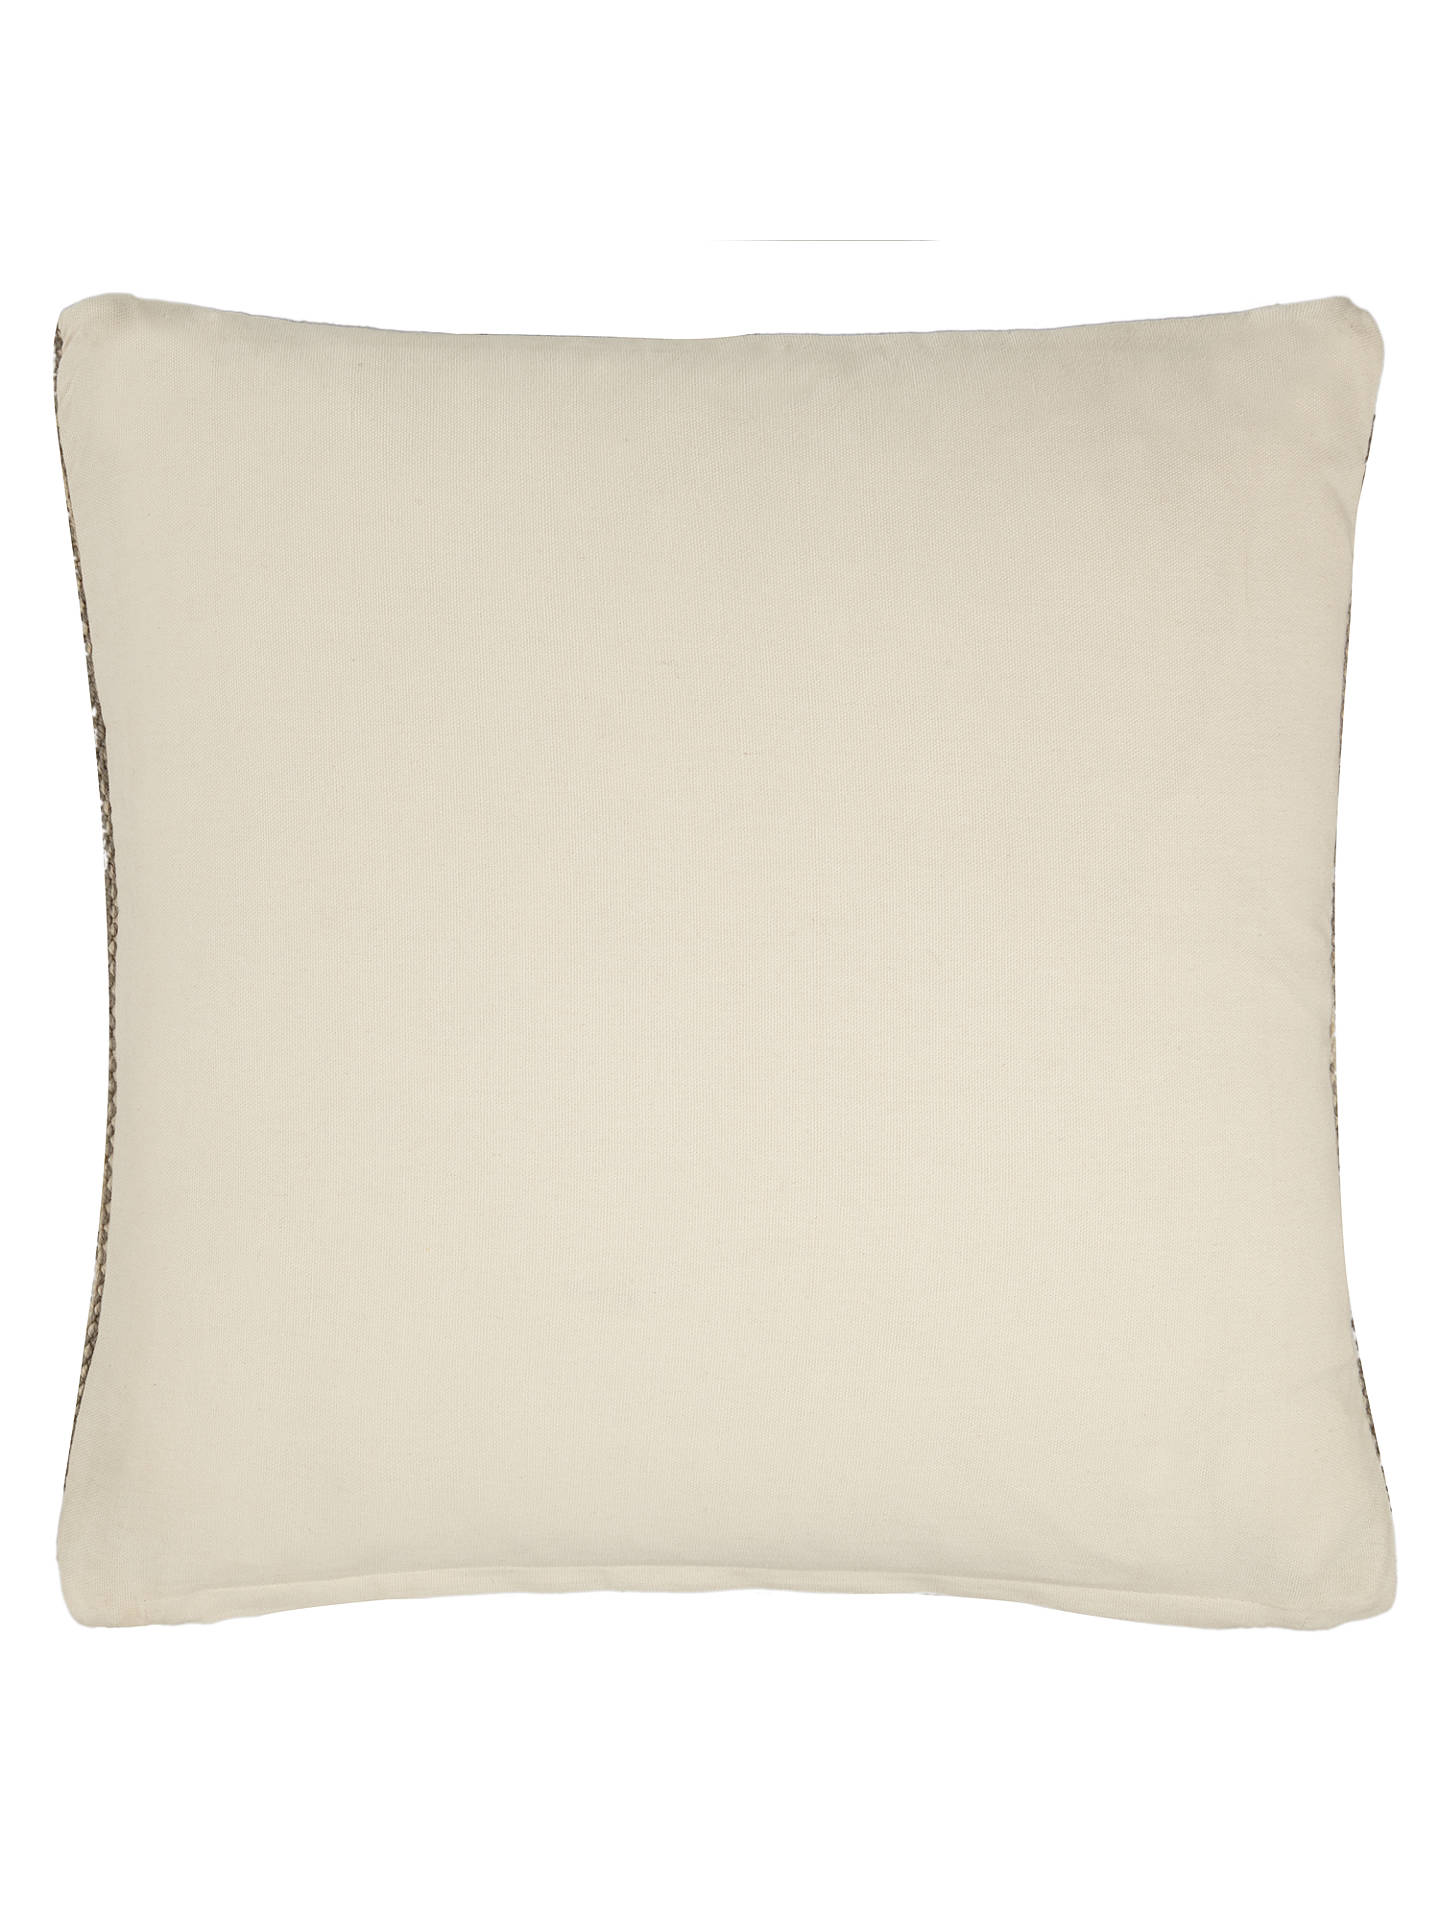 BuyJohn Lewis Ica Weave Cushion, Mono Online at johnlewis.com